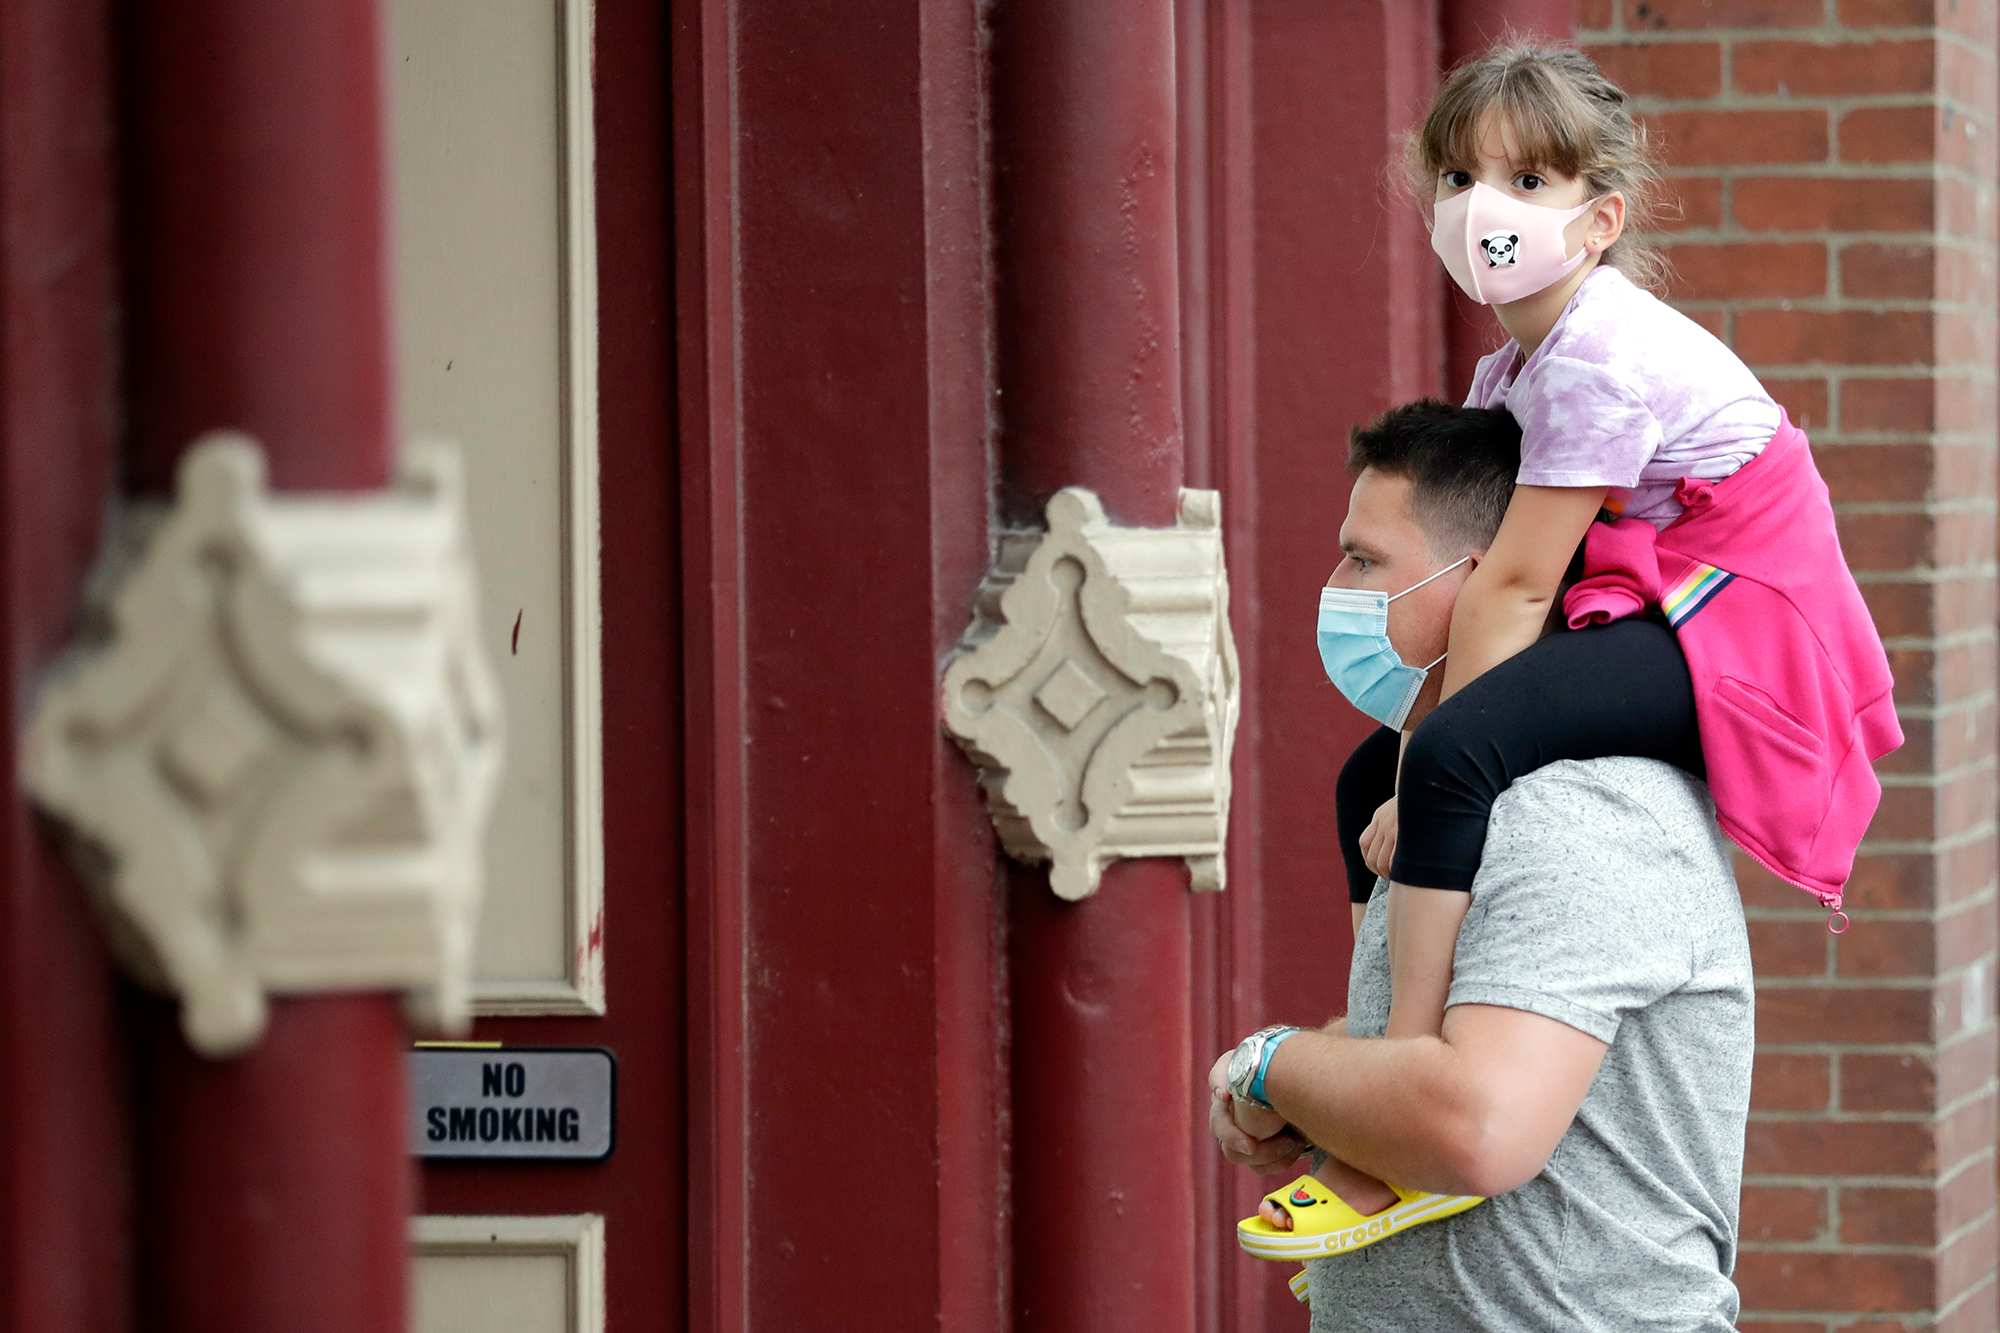 A man and a girl wear masks as they stop to hear a band outside a music venue Monday, June 29, 2020, in Nashville, Tenn. The Nashville Health Department has put in place a mask mandate beginning Monday to help battle the spread of the coronavirus. (AP Photo/Mark Humphrey)